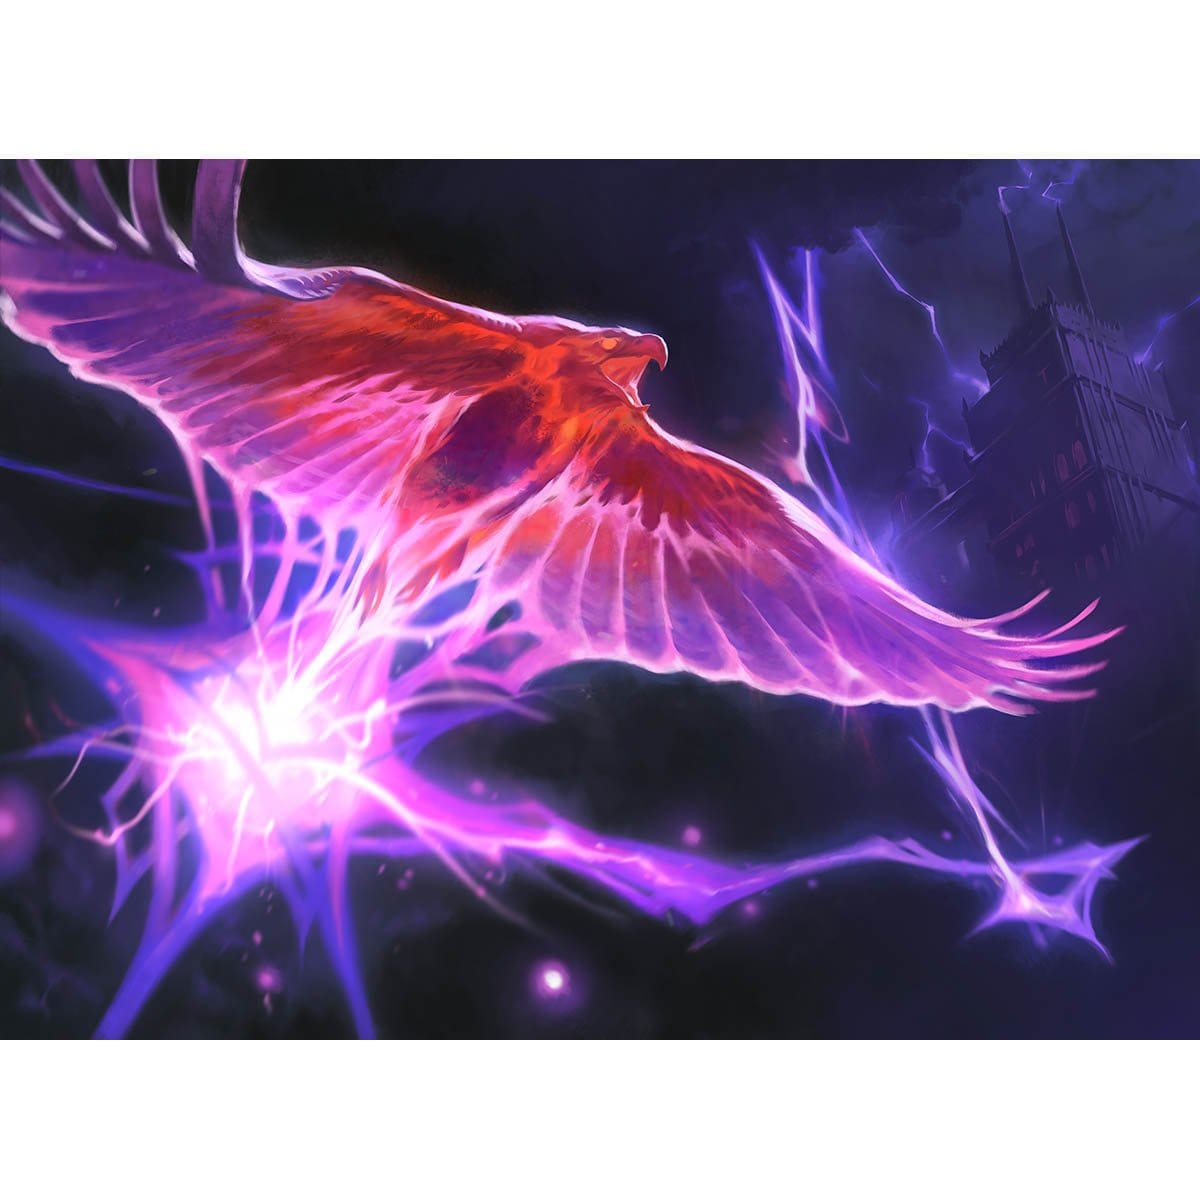 Arclight Phoenix Print - Print - Original Magic Art - Accessories for Magic the Gathering and other card games